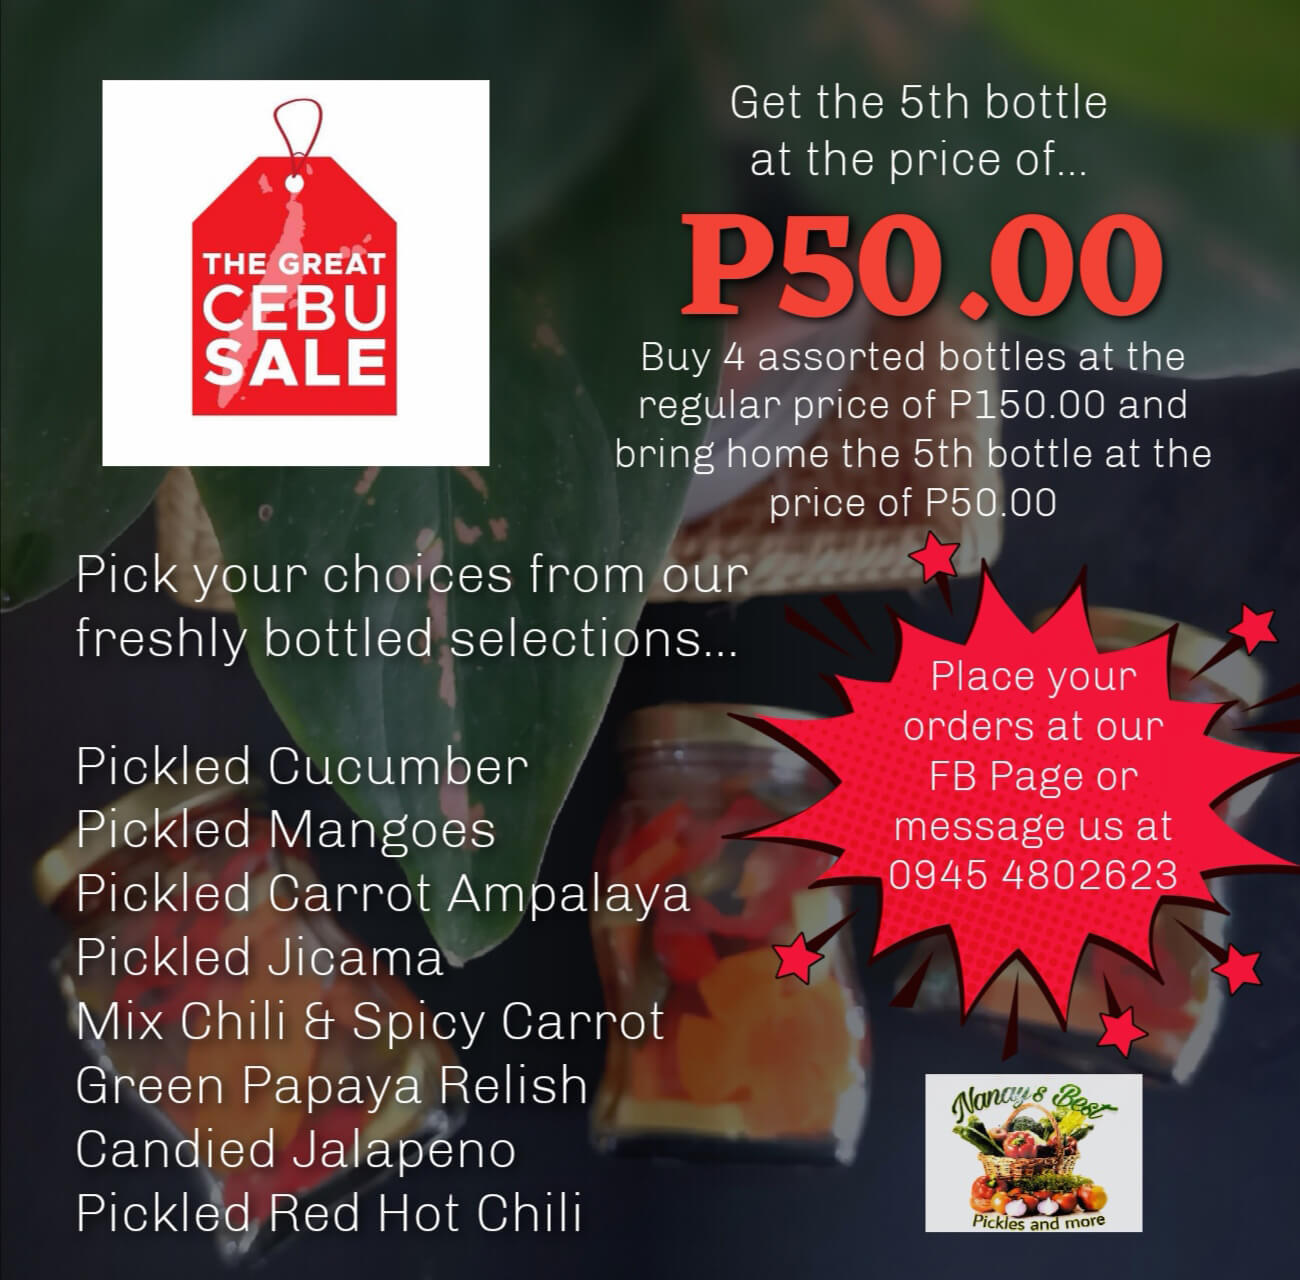 Nanay's Best offers bottled food promo